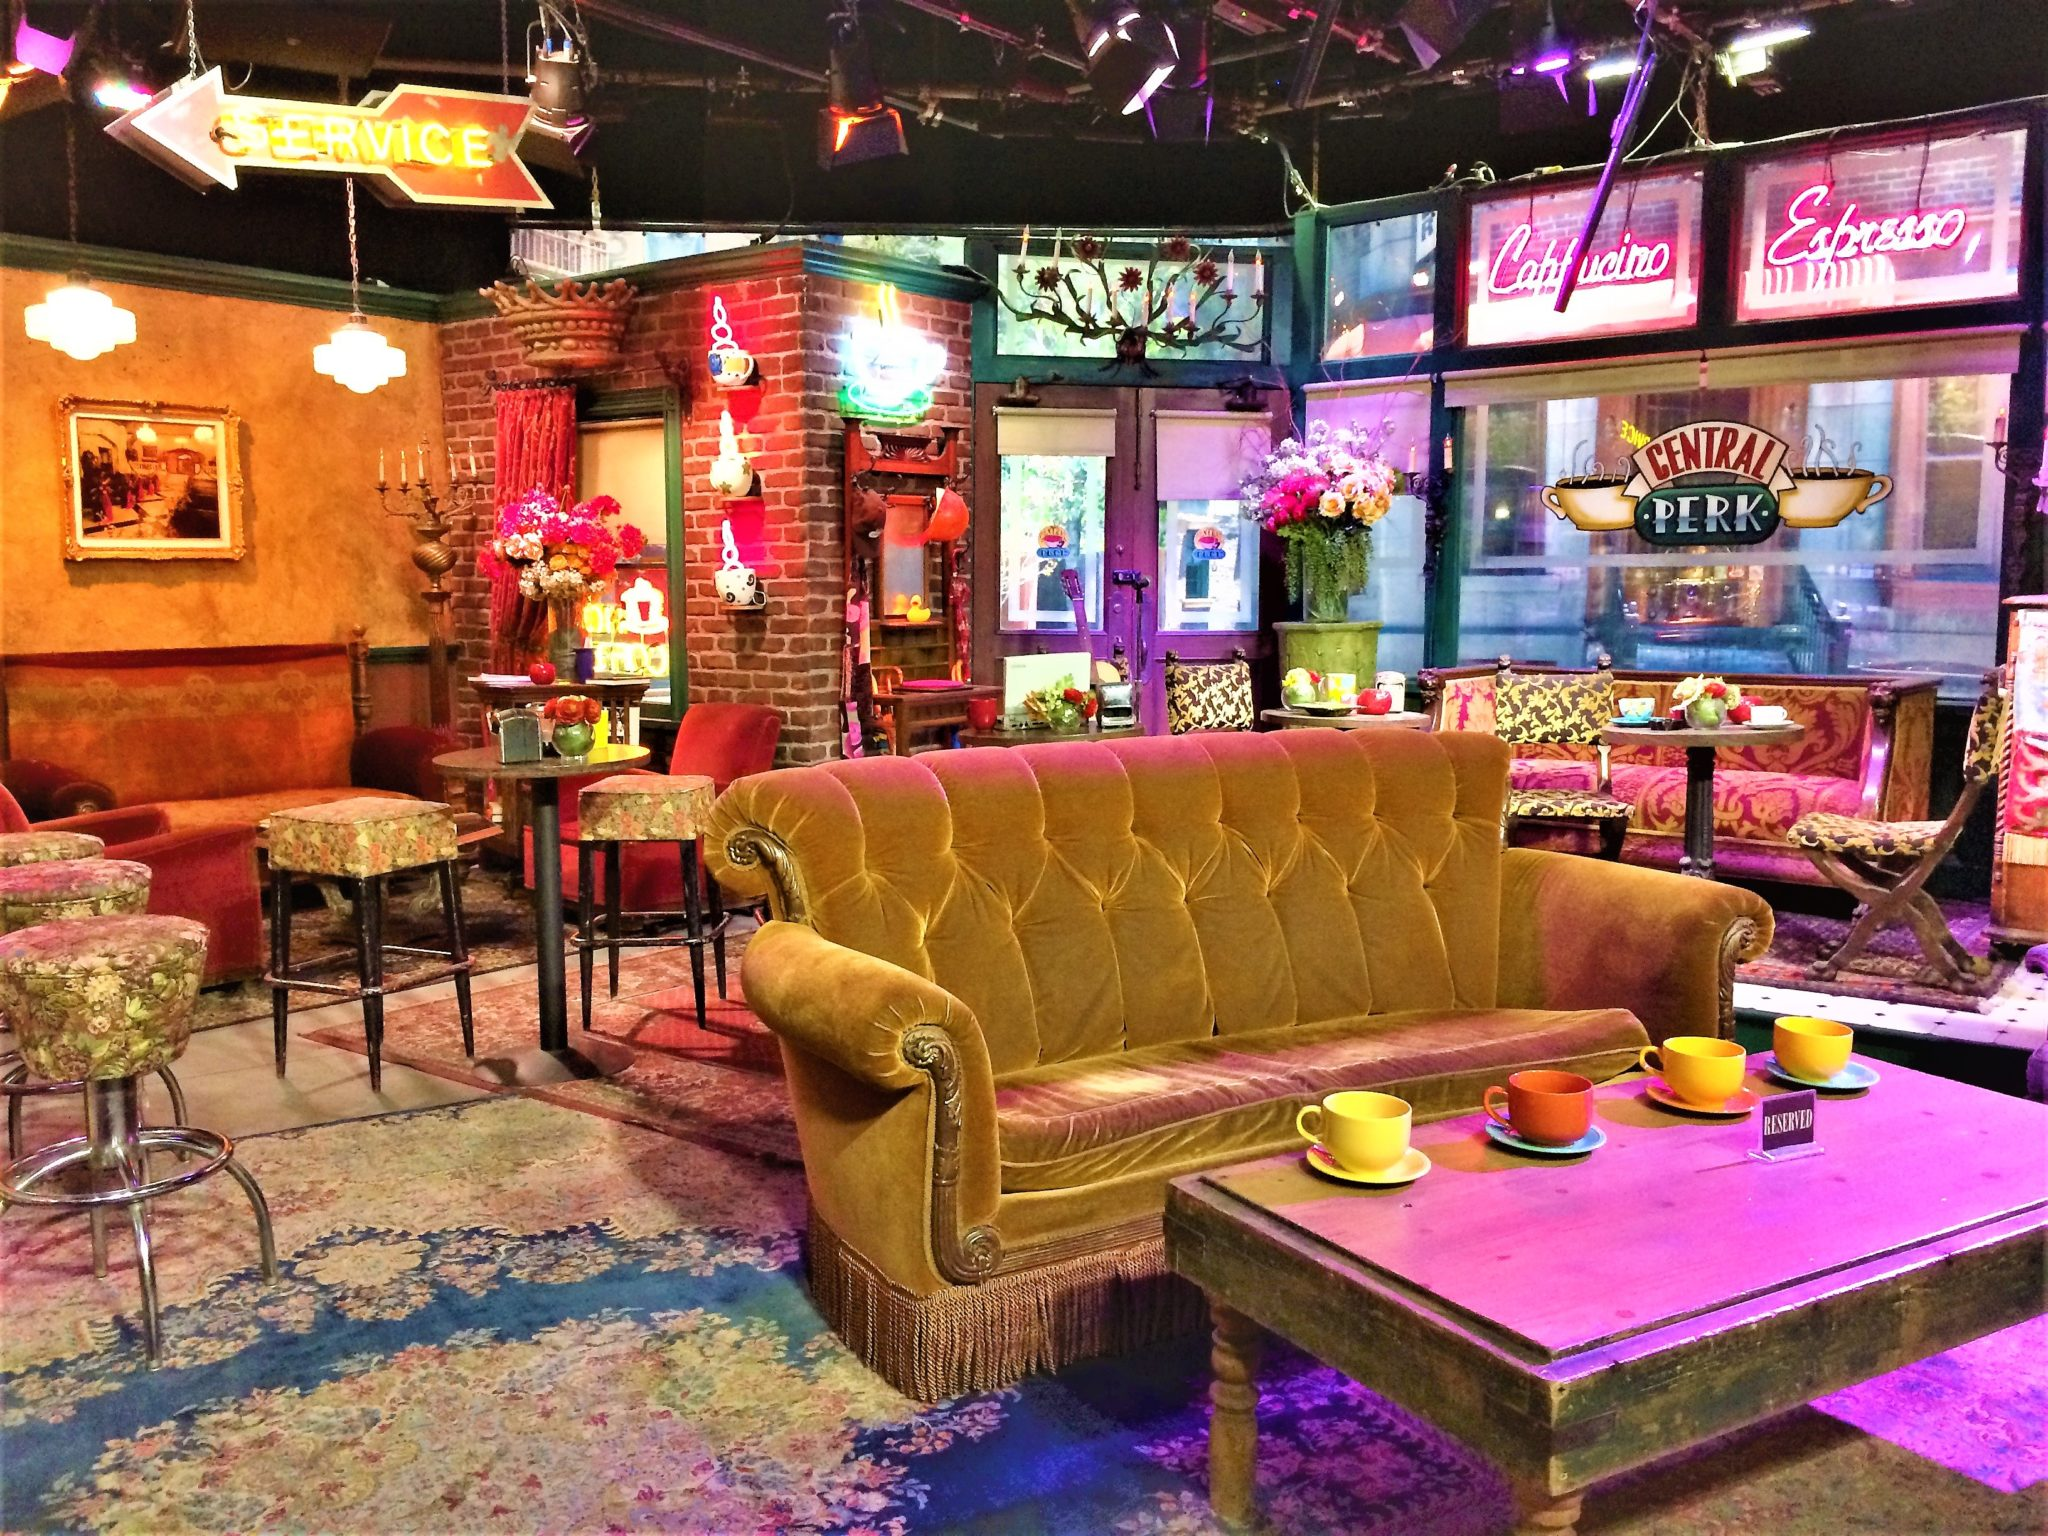 Central Perk Friends film set, Warner Brothers Studios, Things to do in Los Angeles